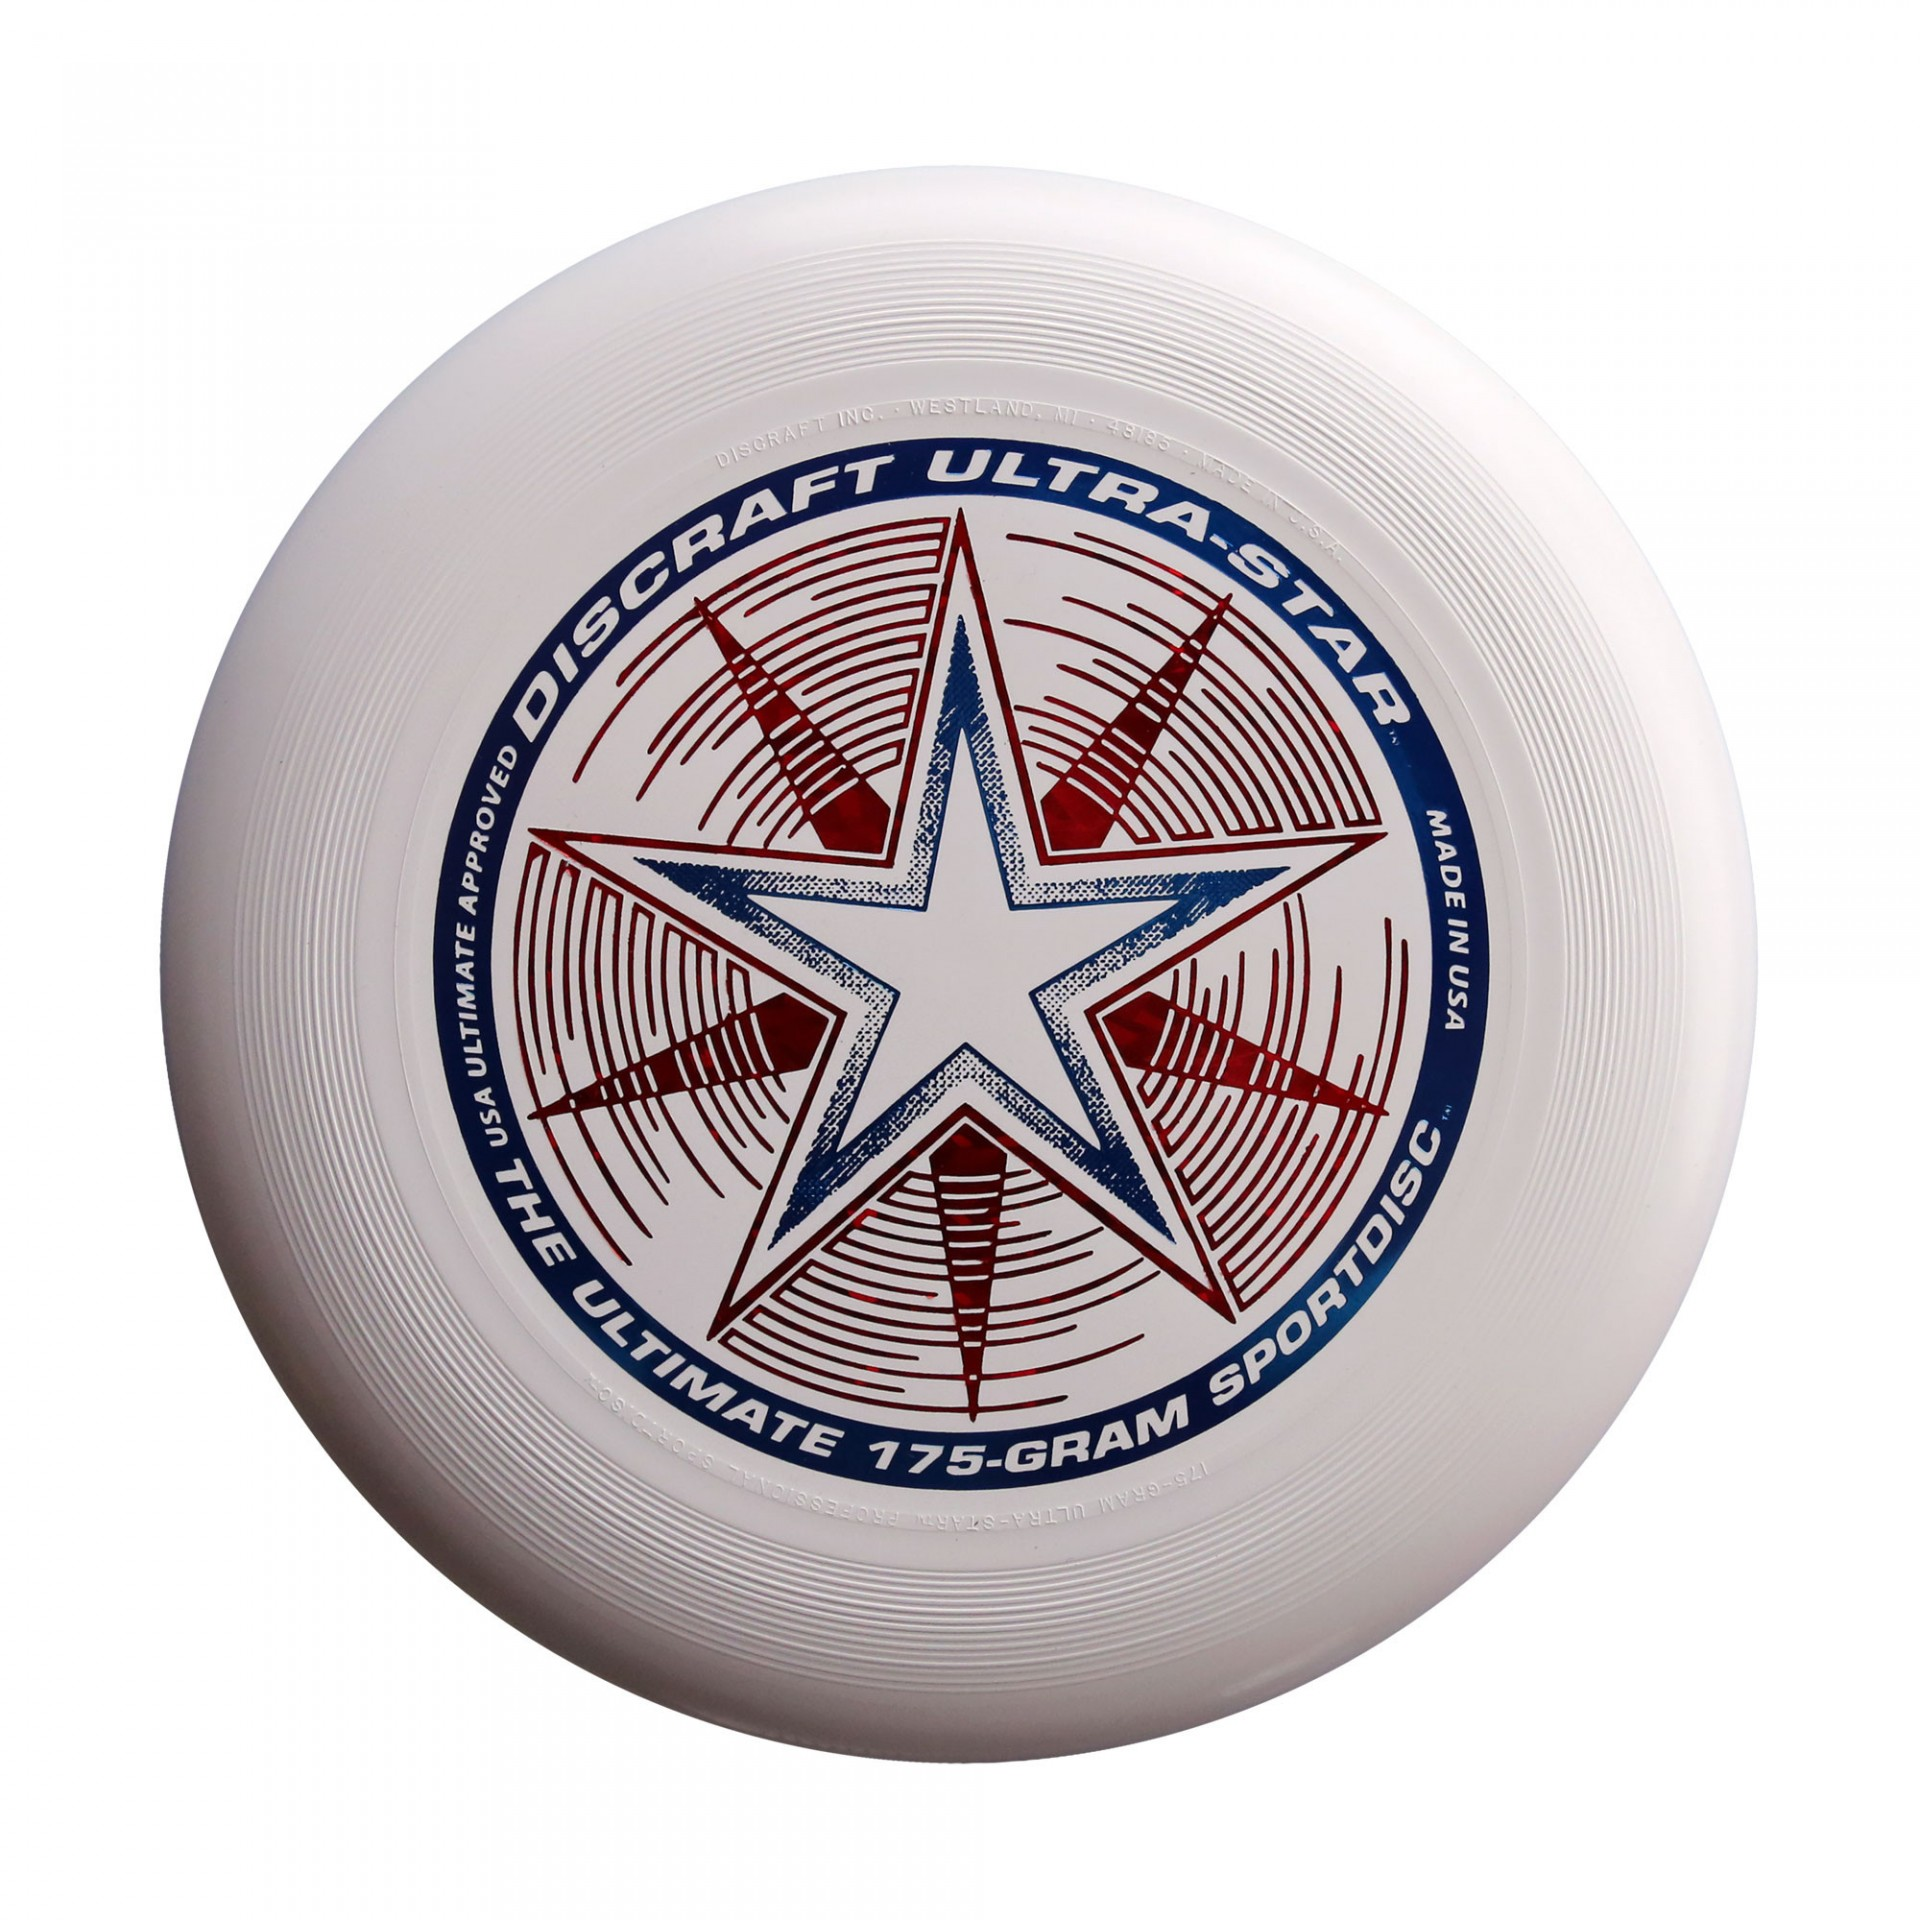 Discraft's Ultra-Star 175-gram flying disc. ($7–$13, depending on color)